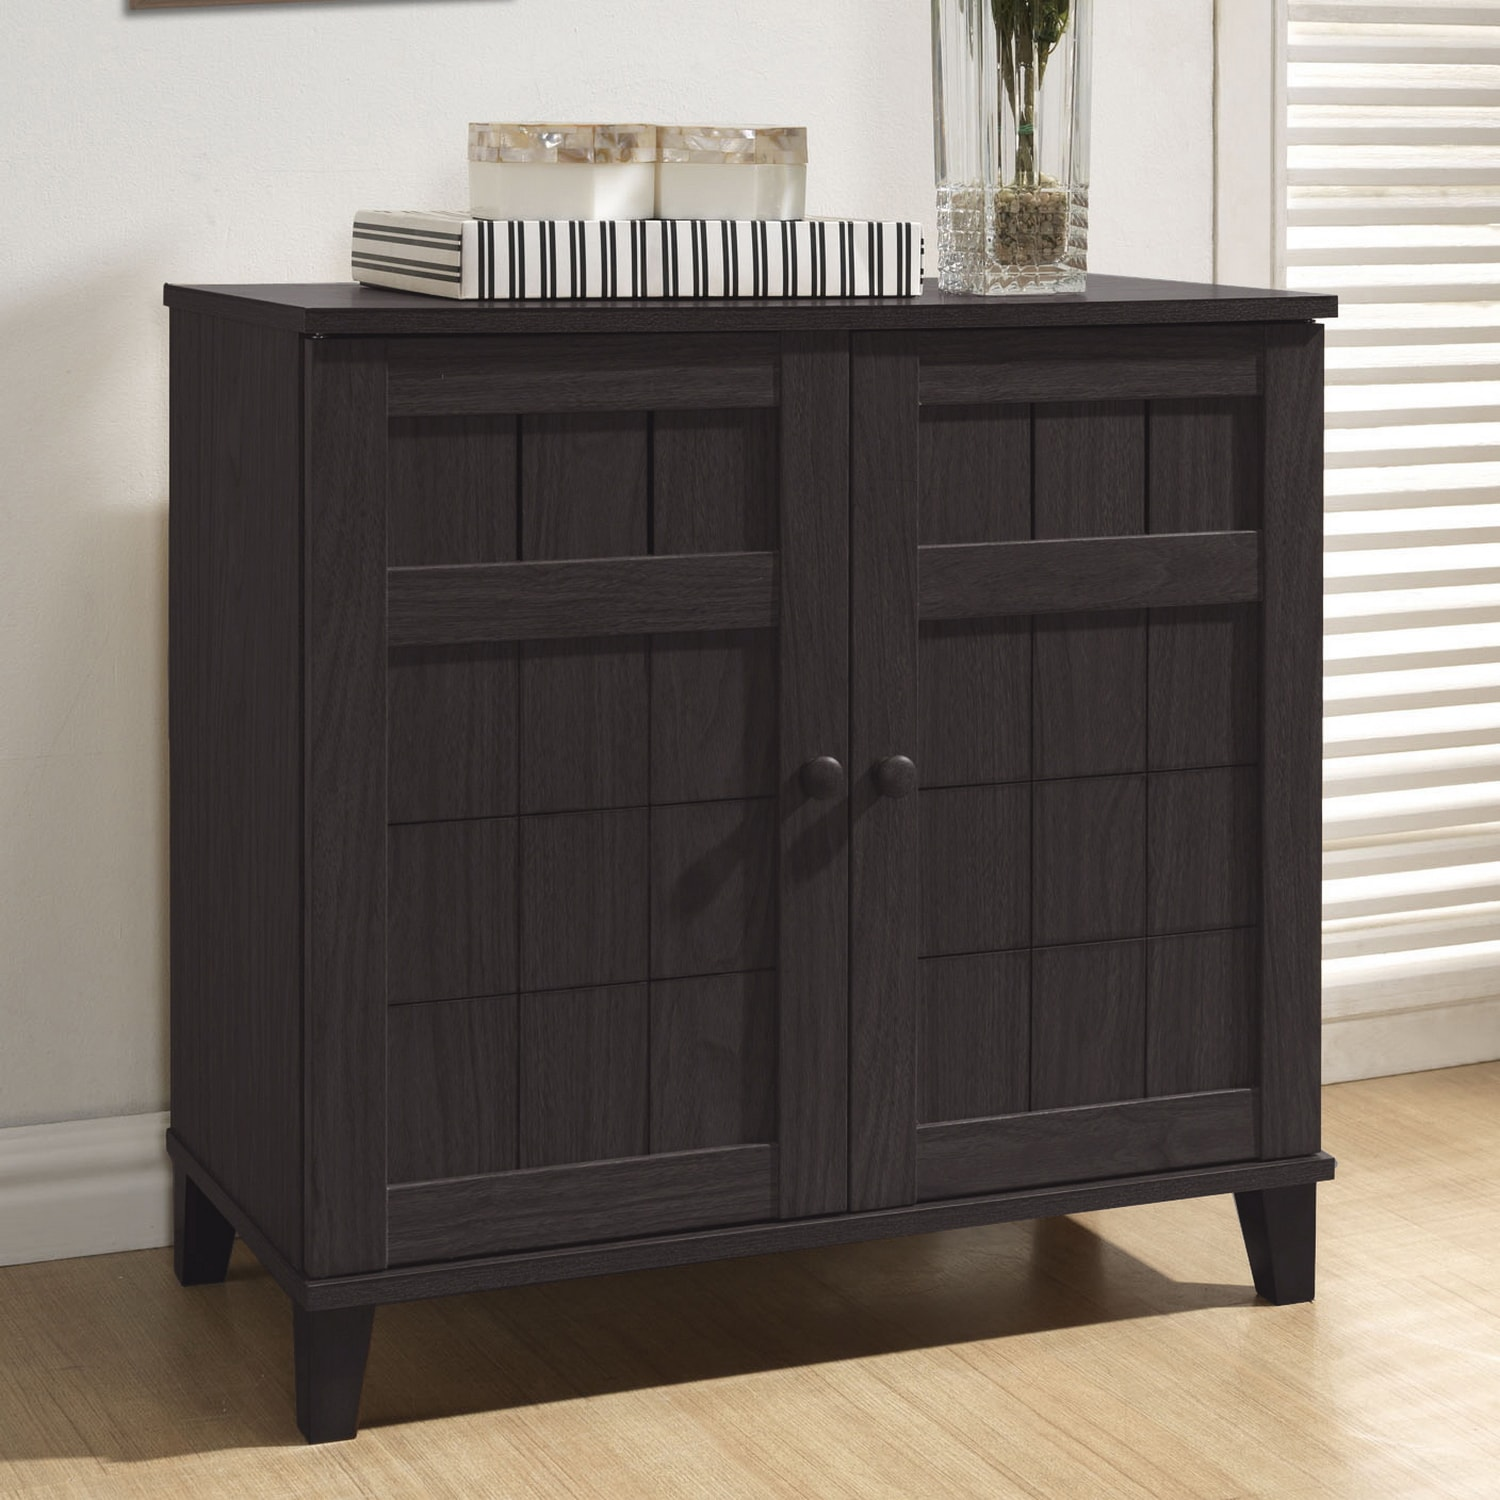 Foyer Cabinets: Shoe Cabinet Wood Wardrobe Storage Organizer Foyer